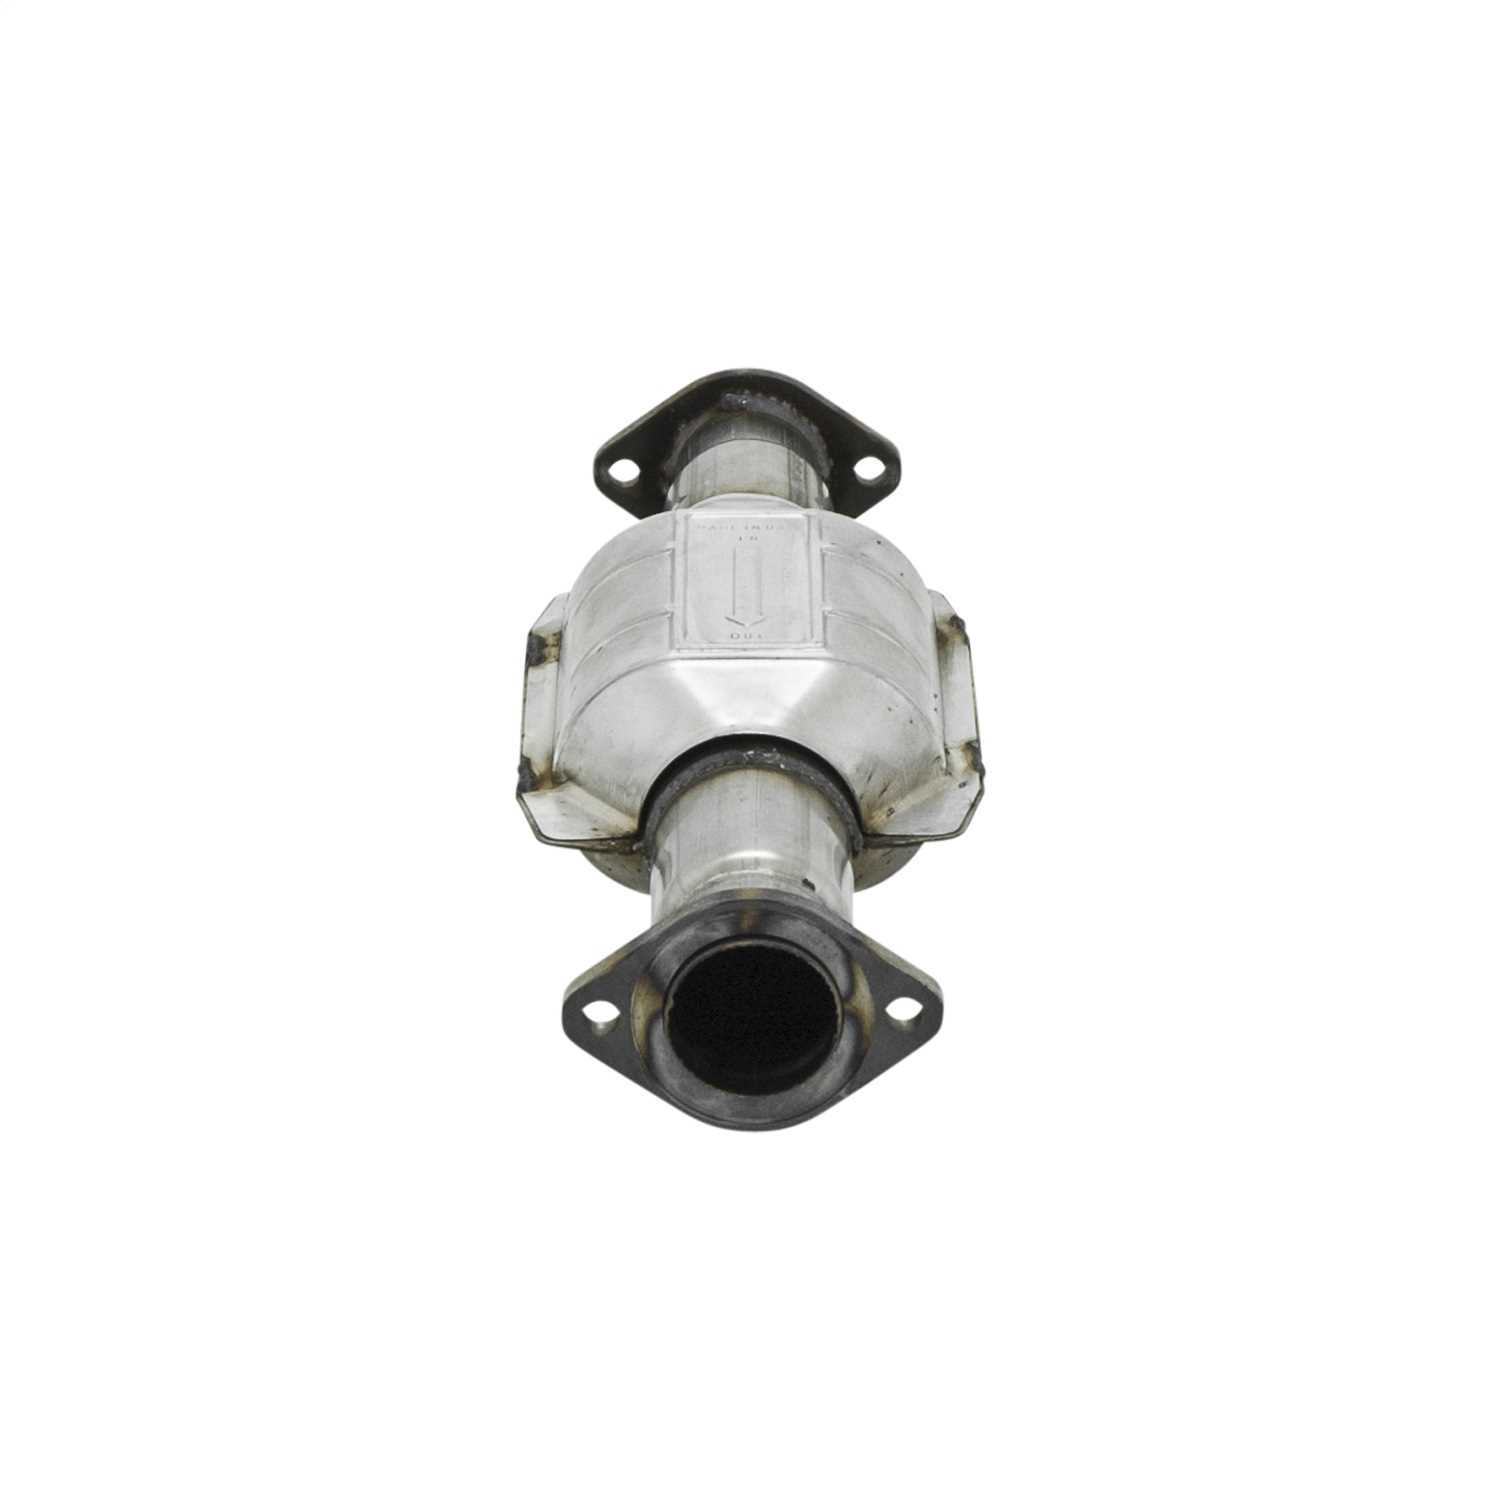 2050002 Flowmaster 49 State Catalytic Converters Direct Fit Catalytic Converter